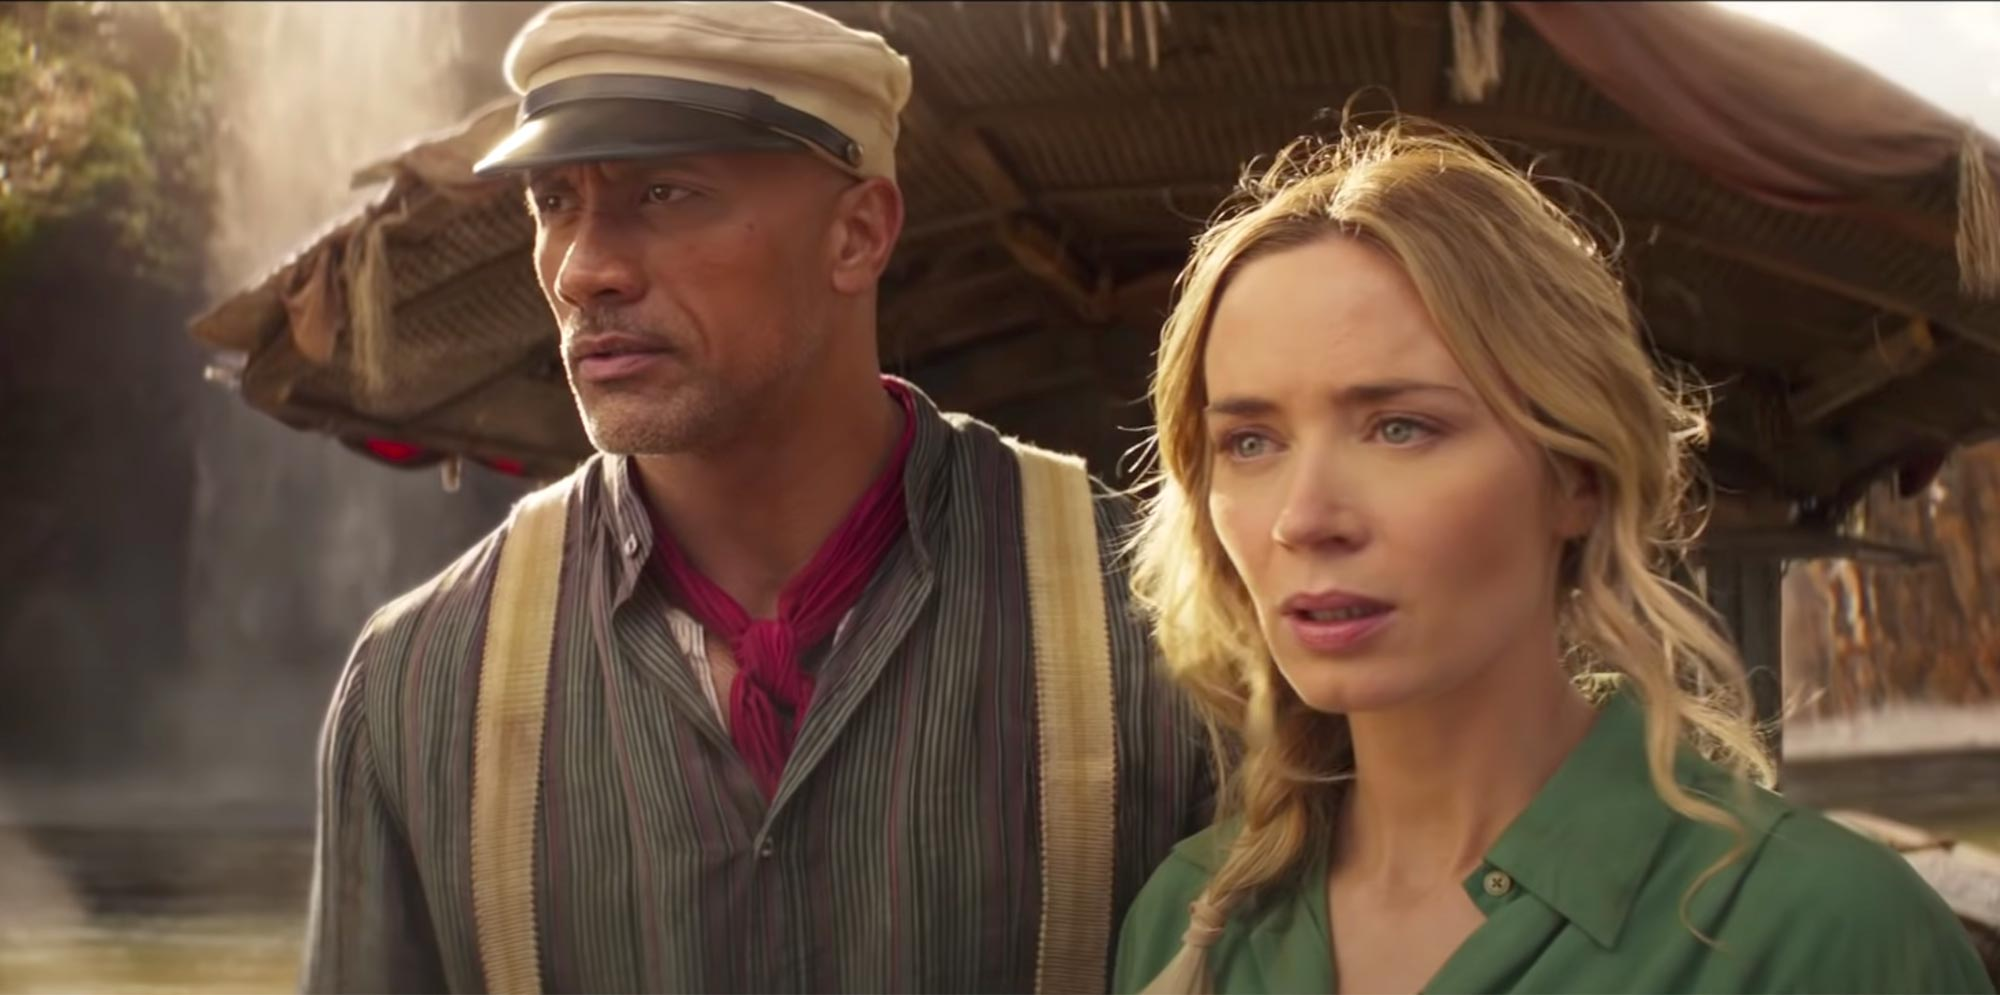 Dwayne Johnson, Emily Blunt face off in new 'Jungle Cruise' trailers | EW.com